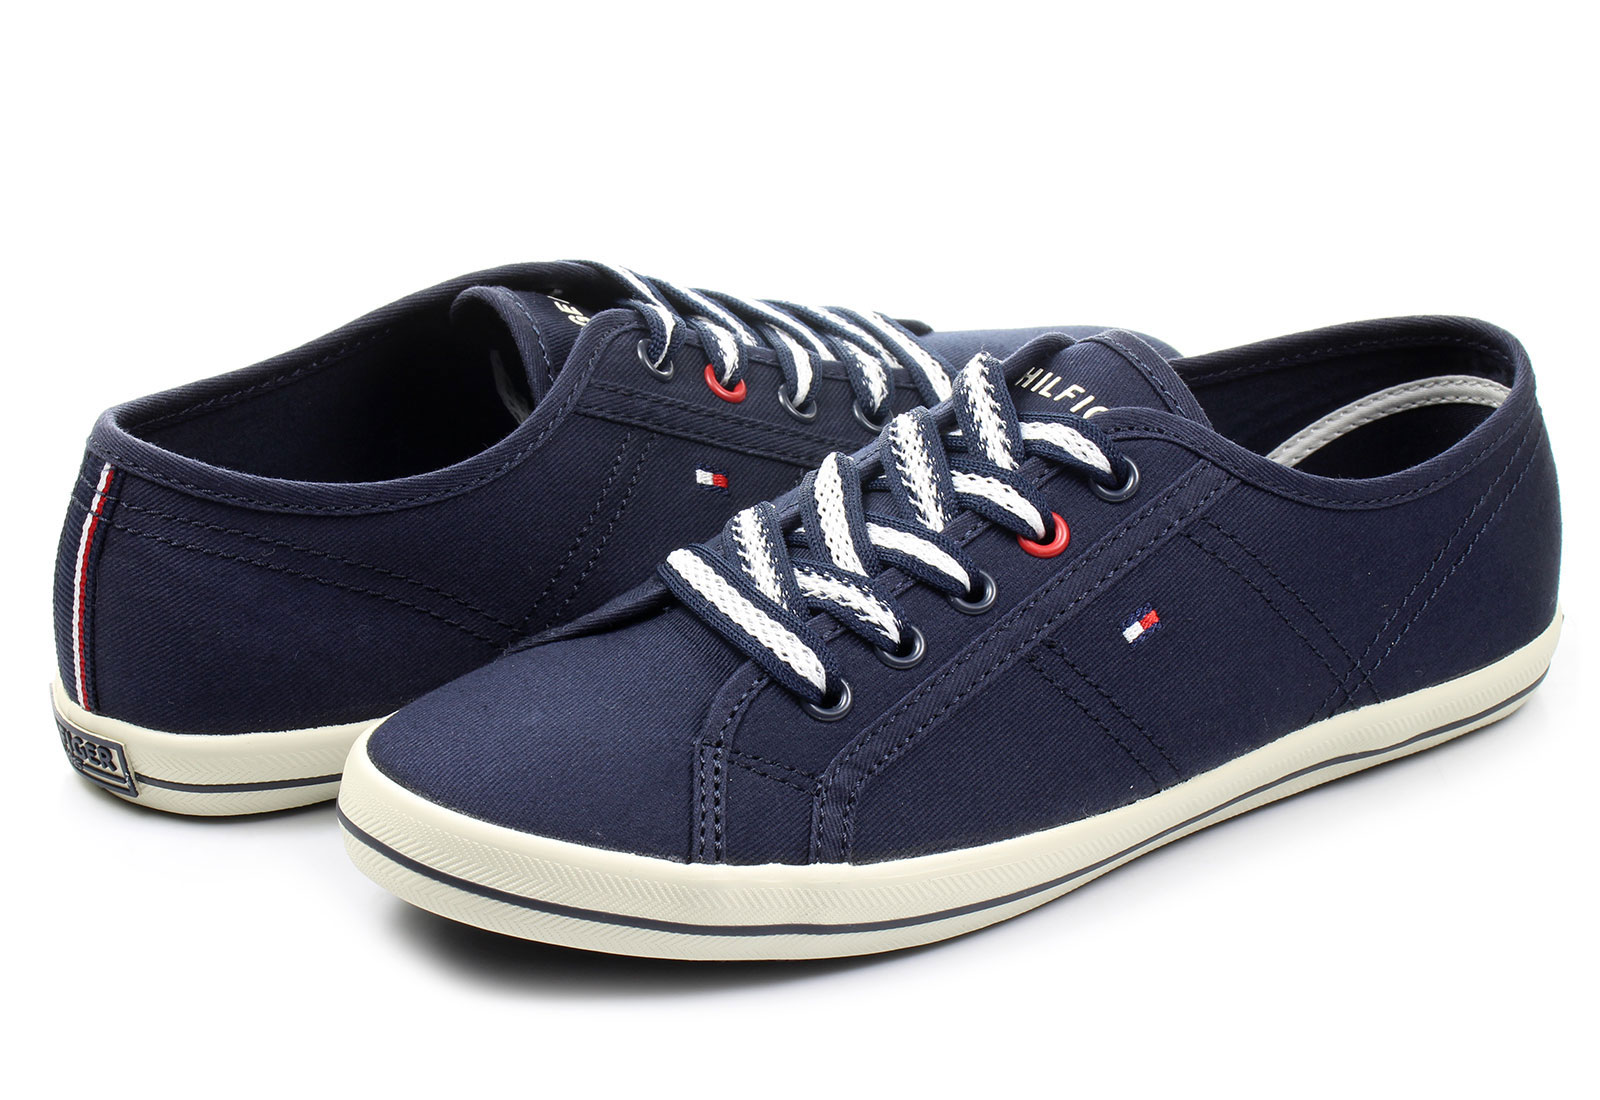 tommy hilfiger shoes victoria 2d 16s 0840 403 online shop for sneakers shoes and boots. Black Bedroom Furniture Sets. Home Design Ideas